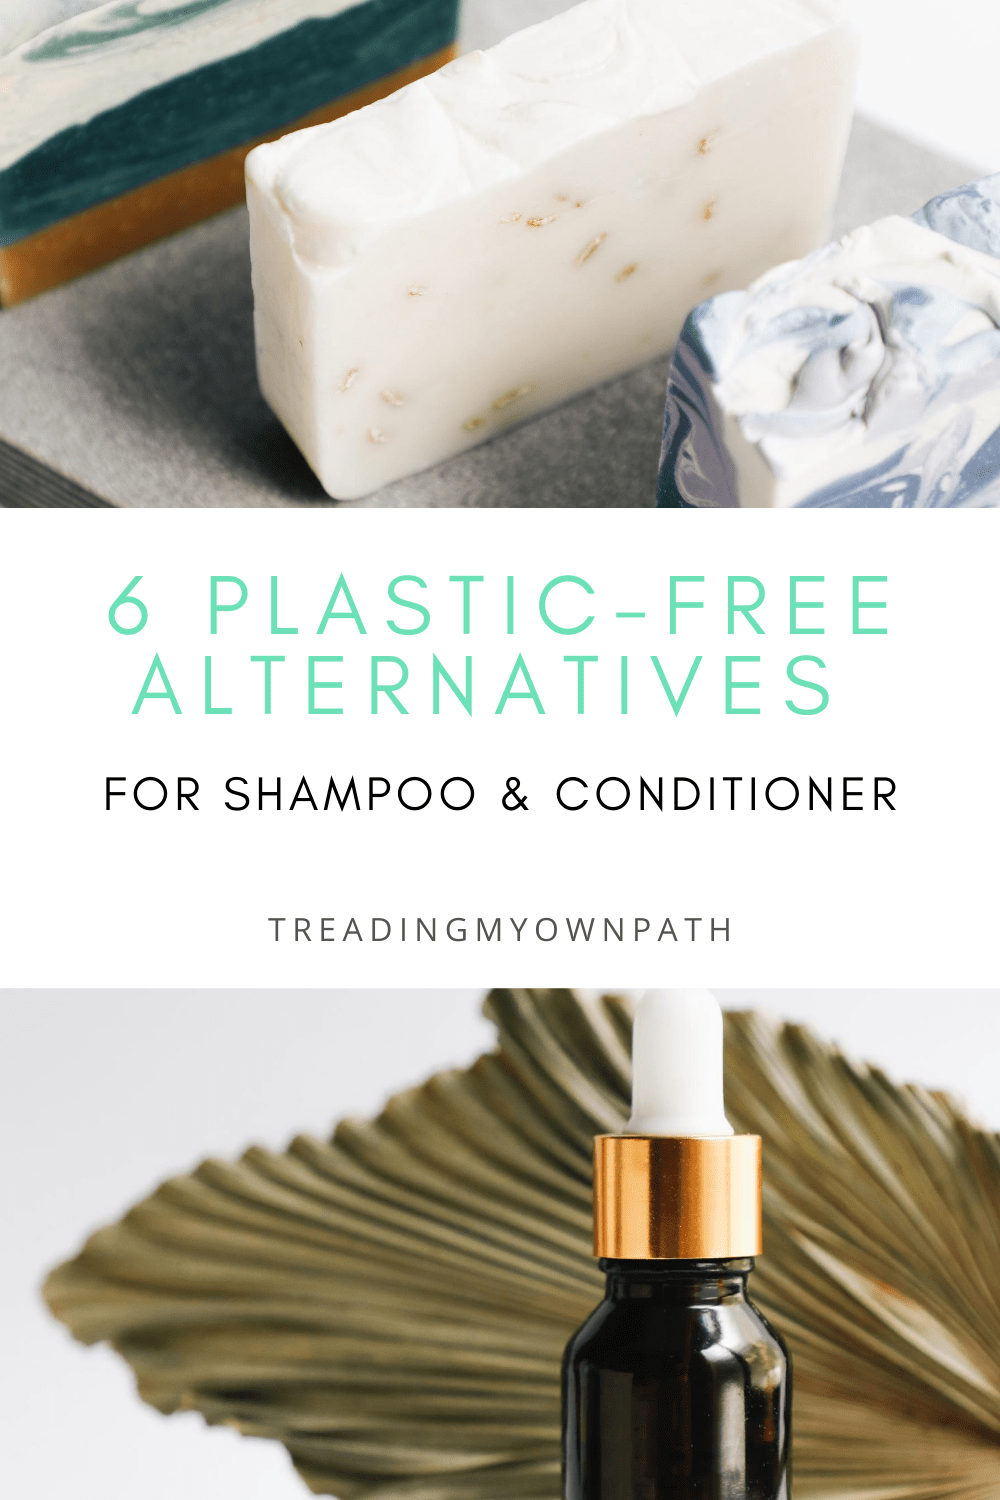 6 Plastic-Free Alternatives for Shampoo and Conditioner